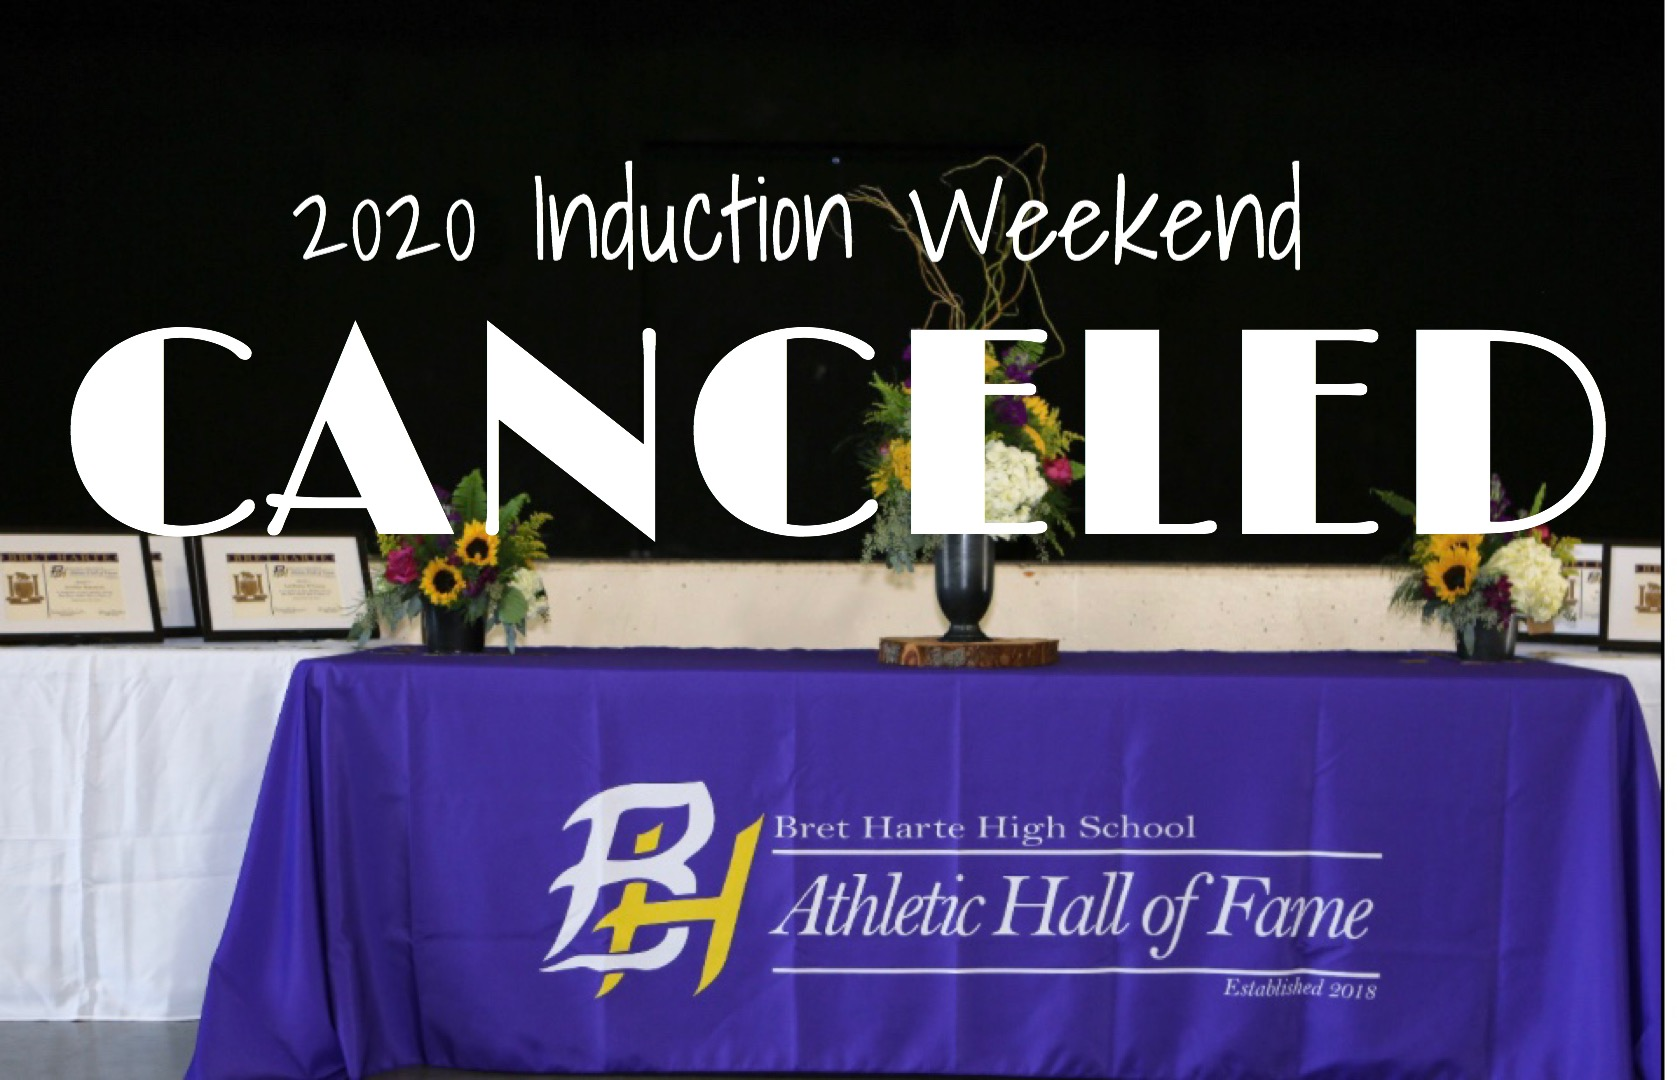 2020 Induction Weekend Canceled